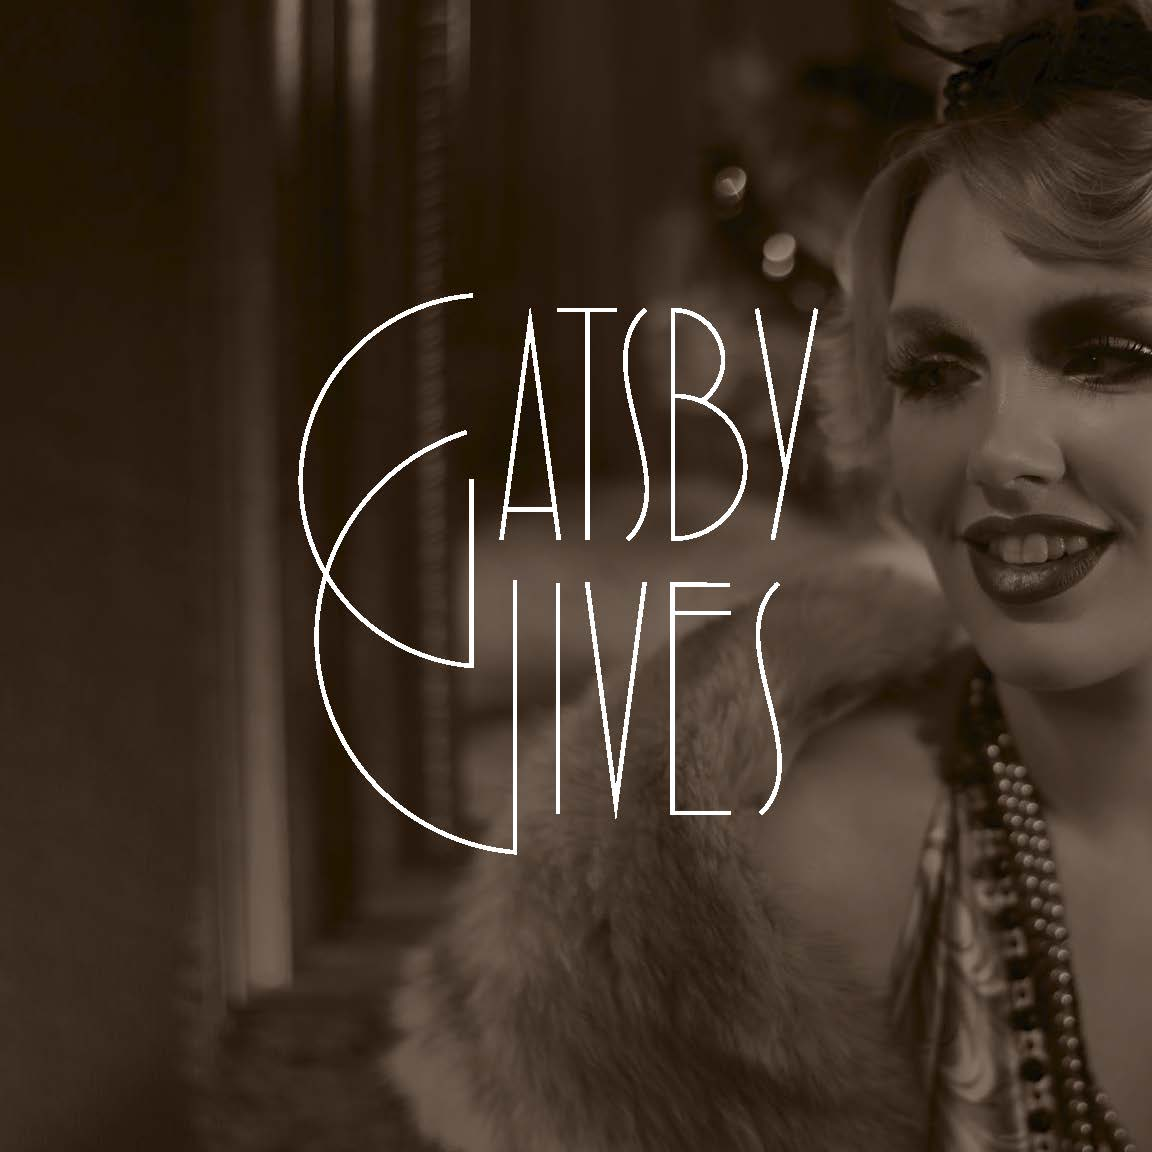 Gatsby Gives, a Roaring 20's New Year's Eve benefit